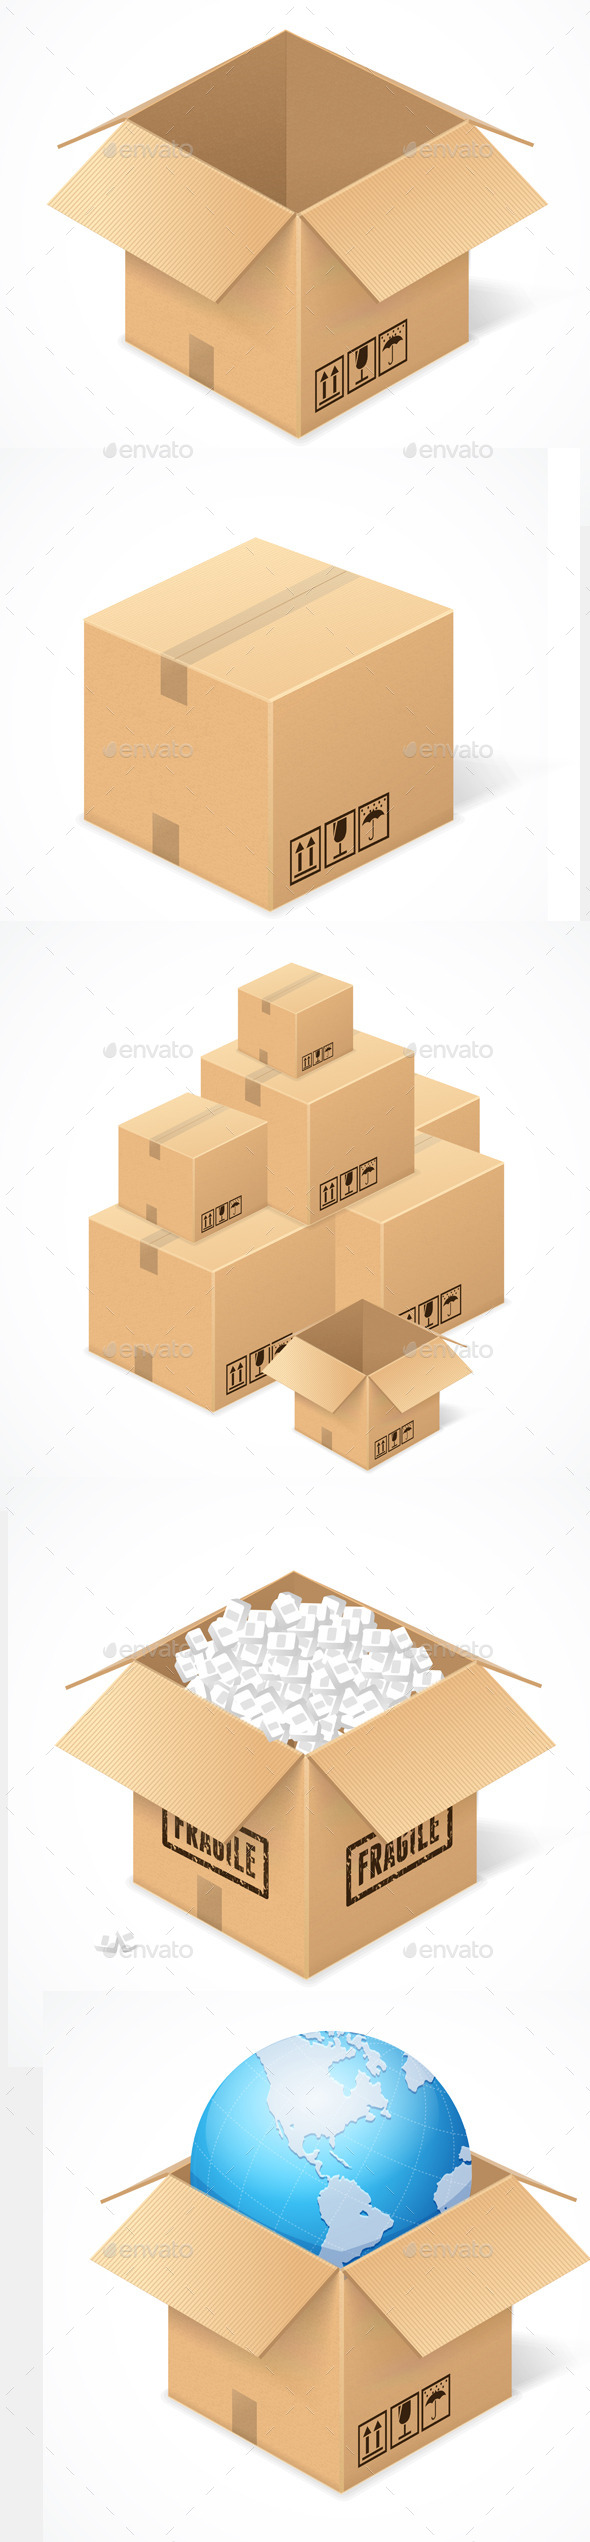 GraphicRiver Cardboard Boxes Isolated on White 11428053